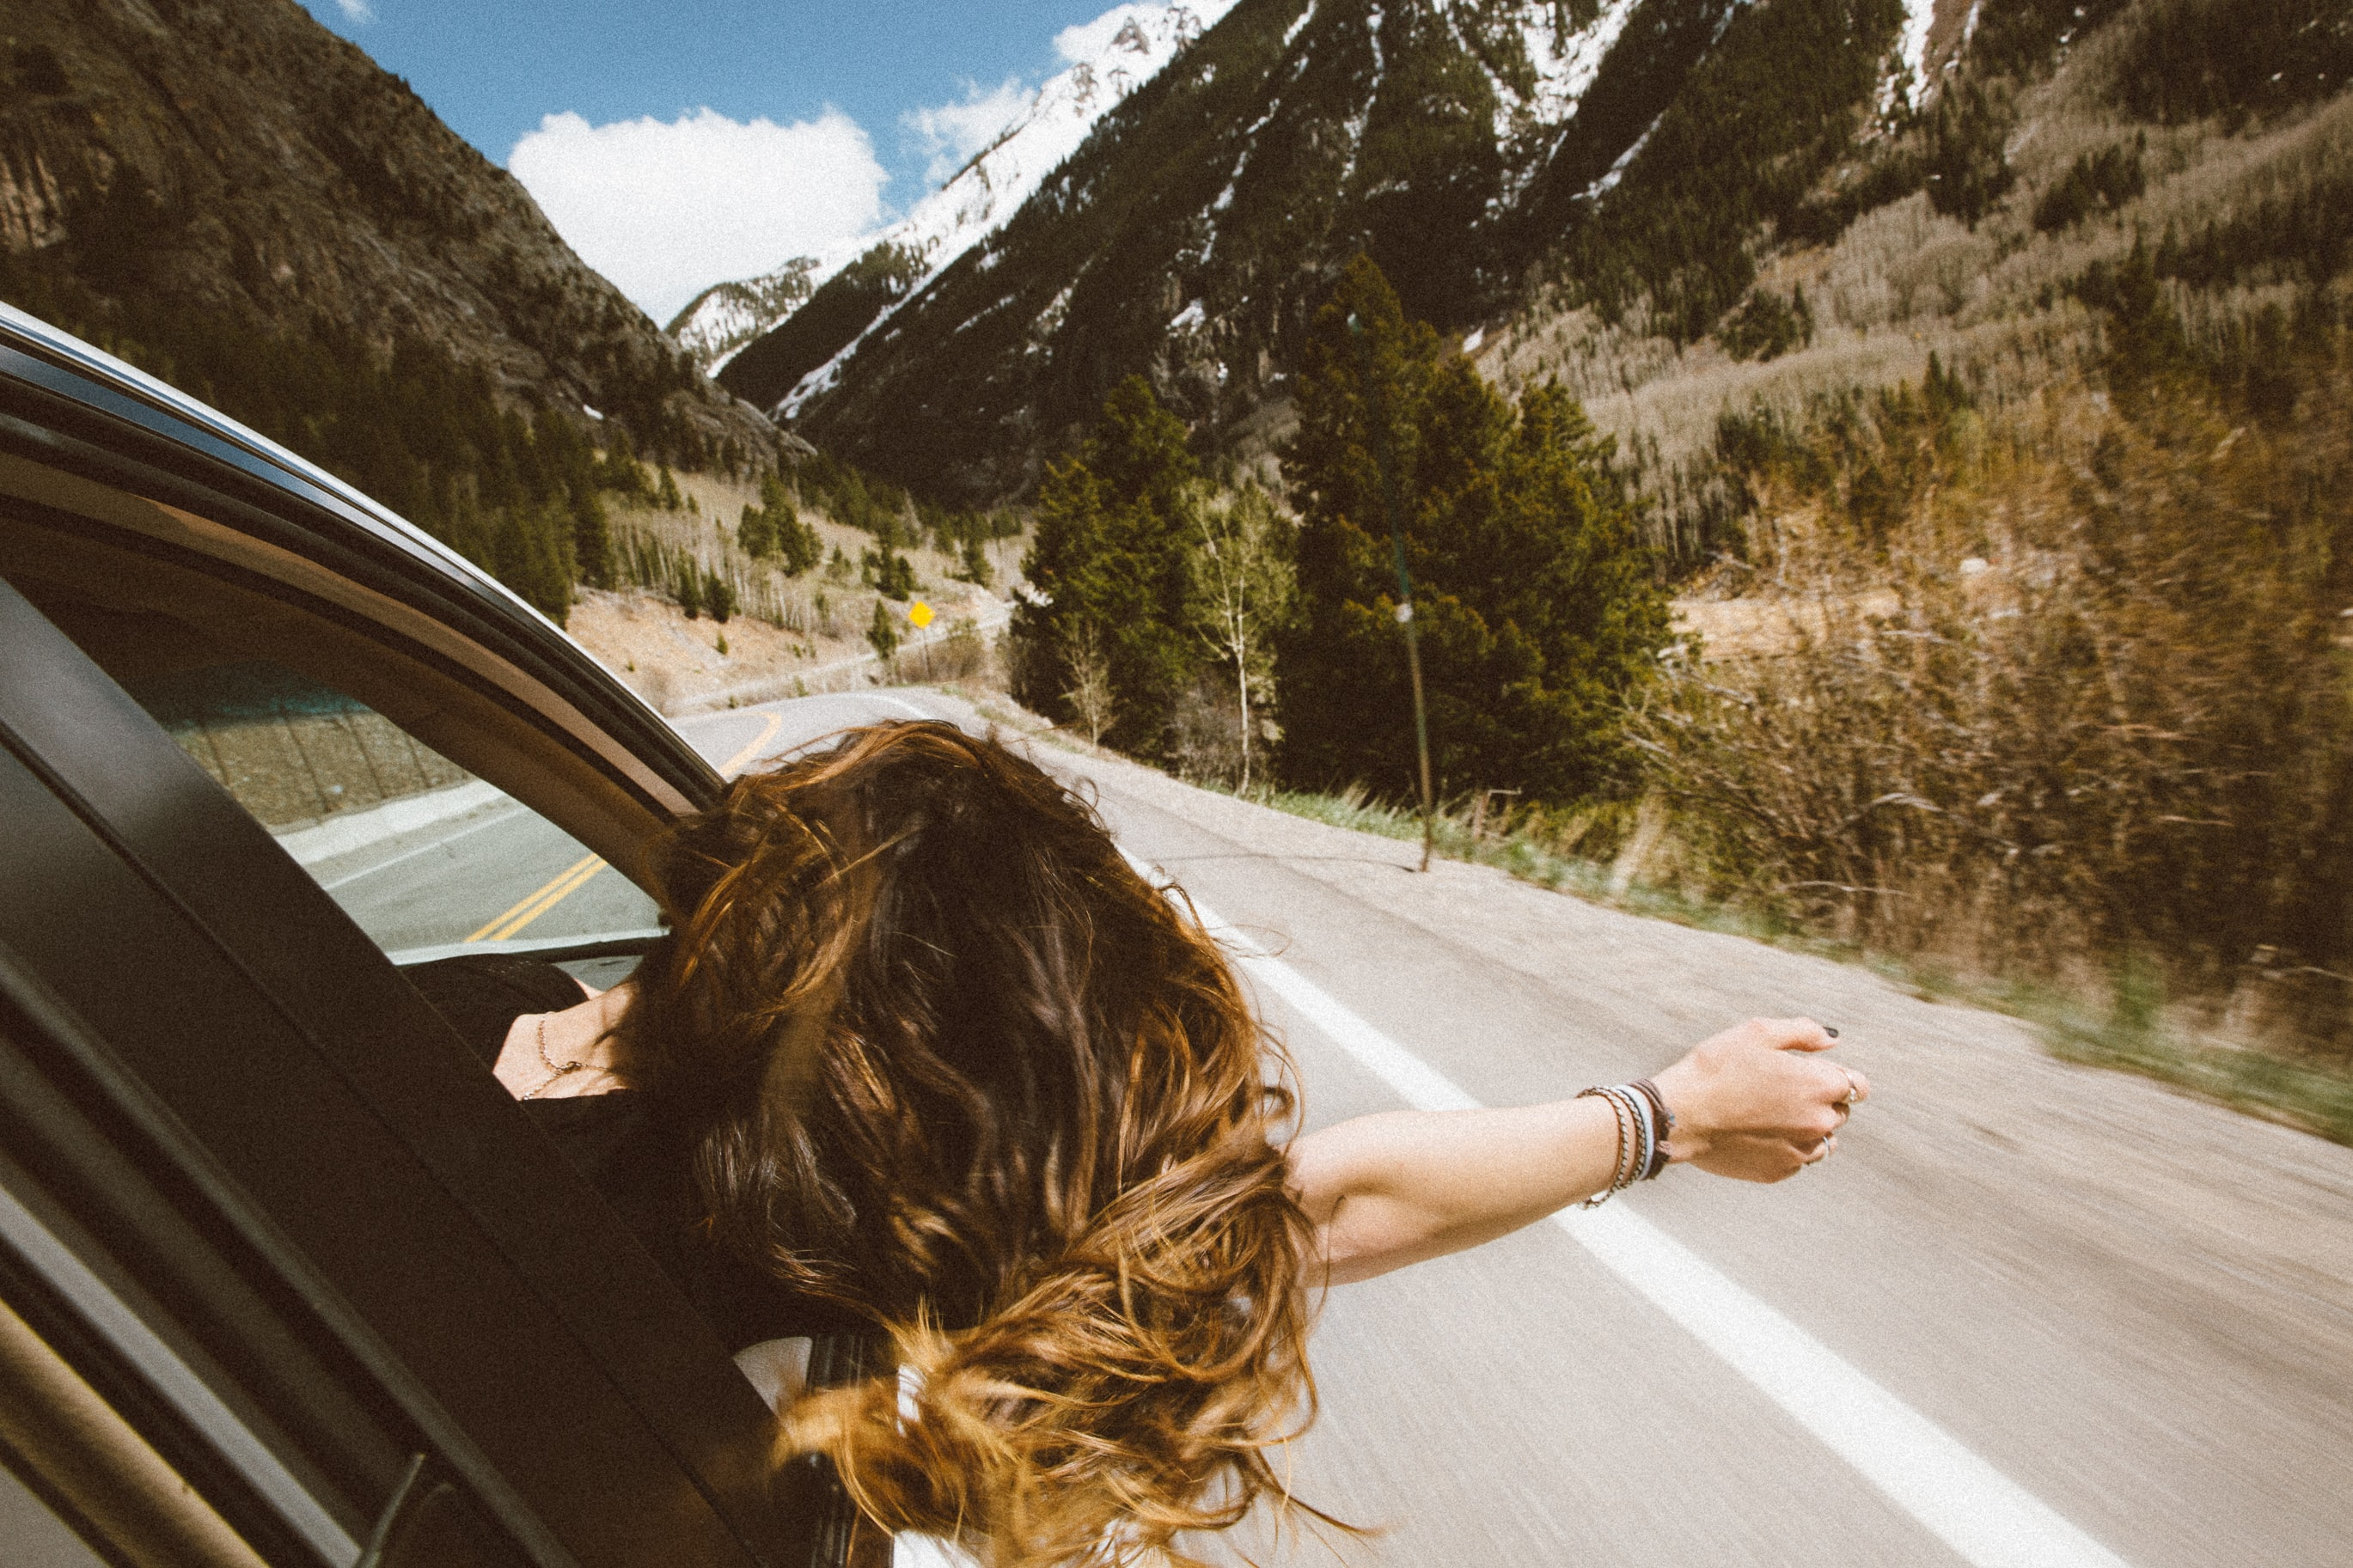 How to Choose a Car for Your Road Trip